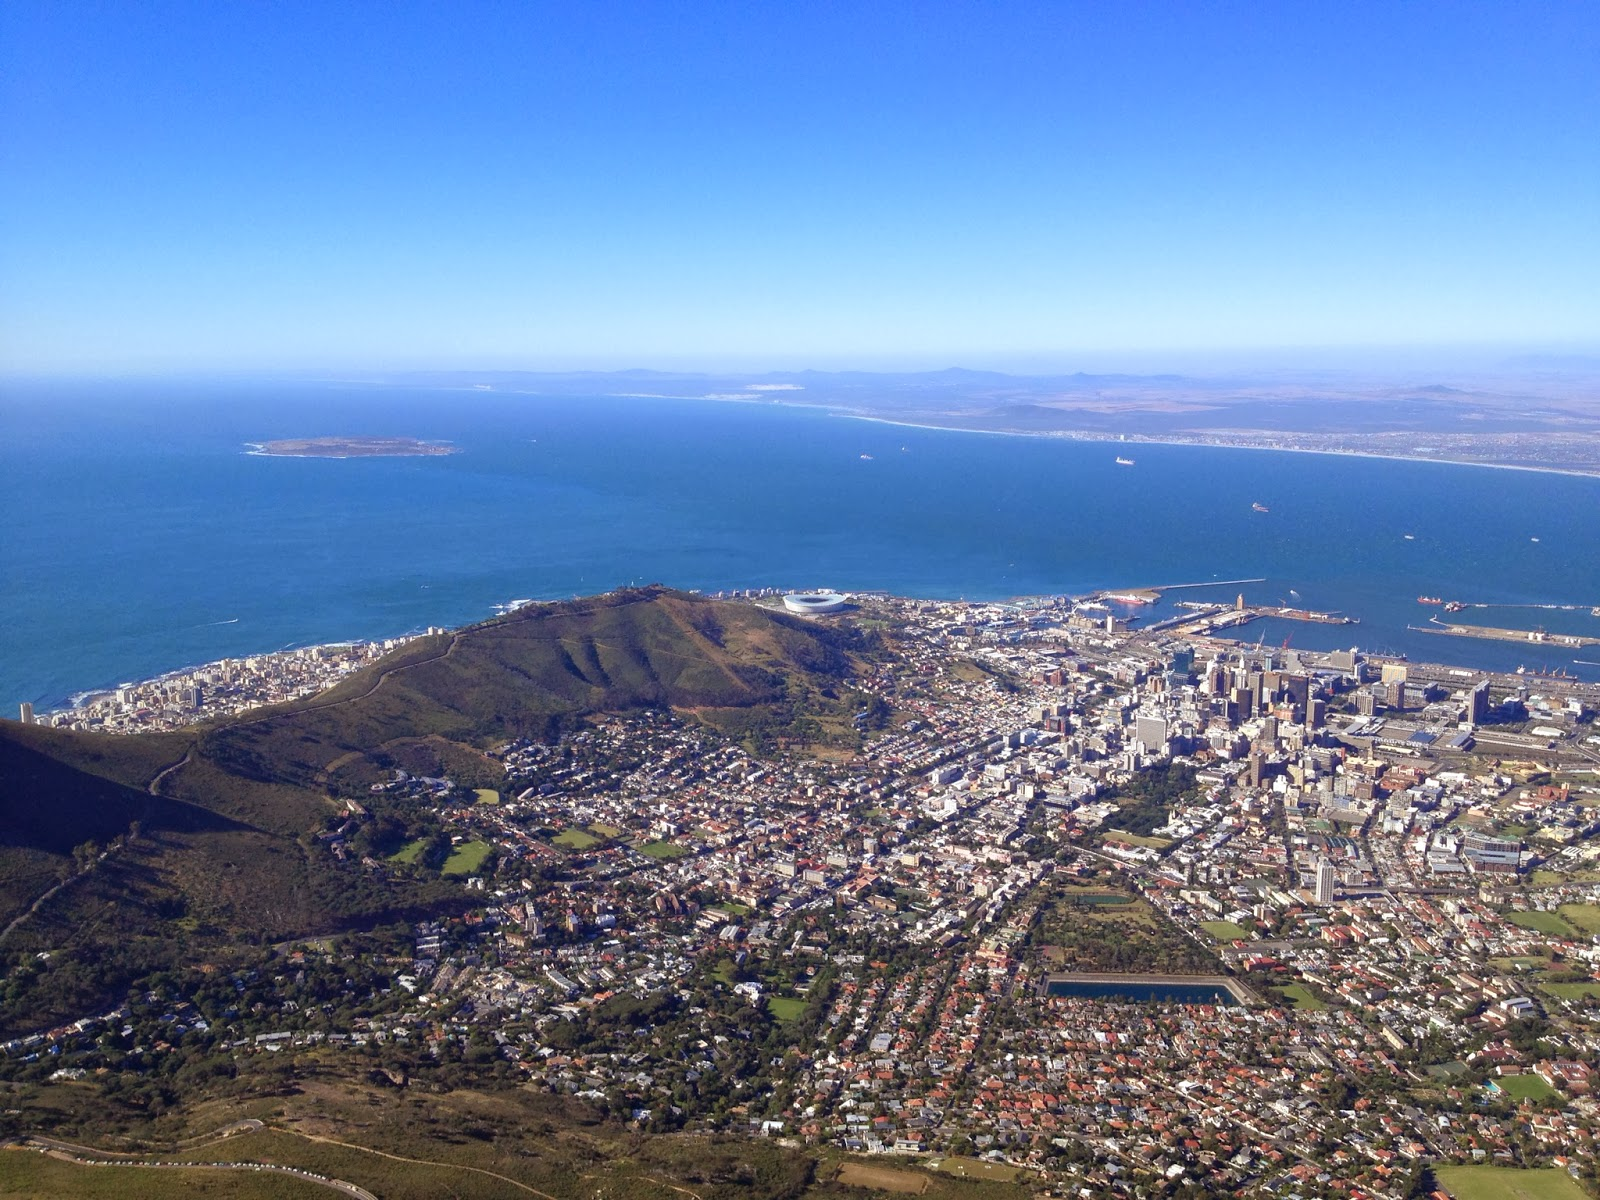 Cape Town - Views from Table Mountain